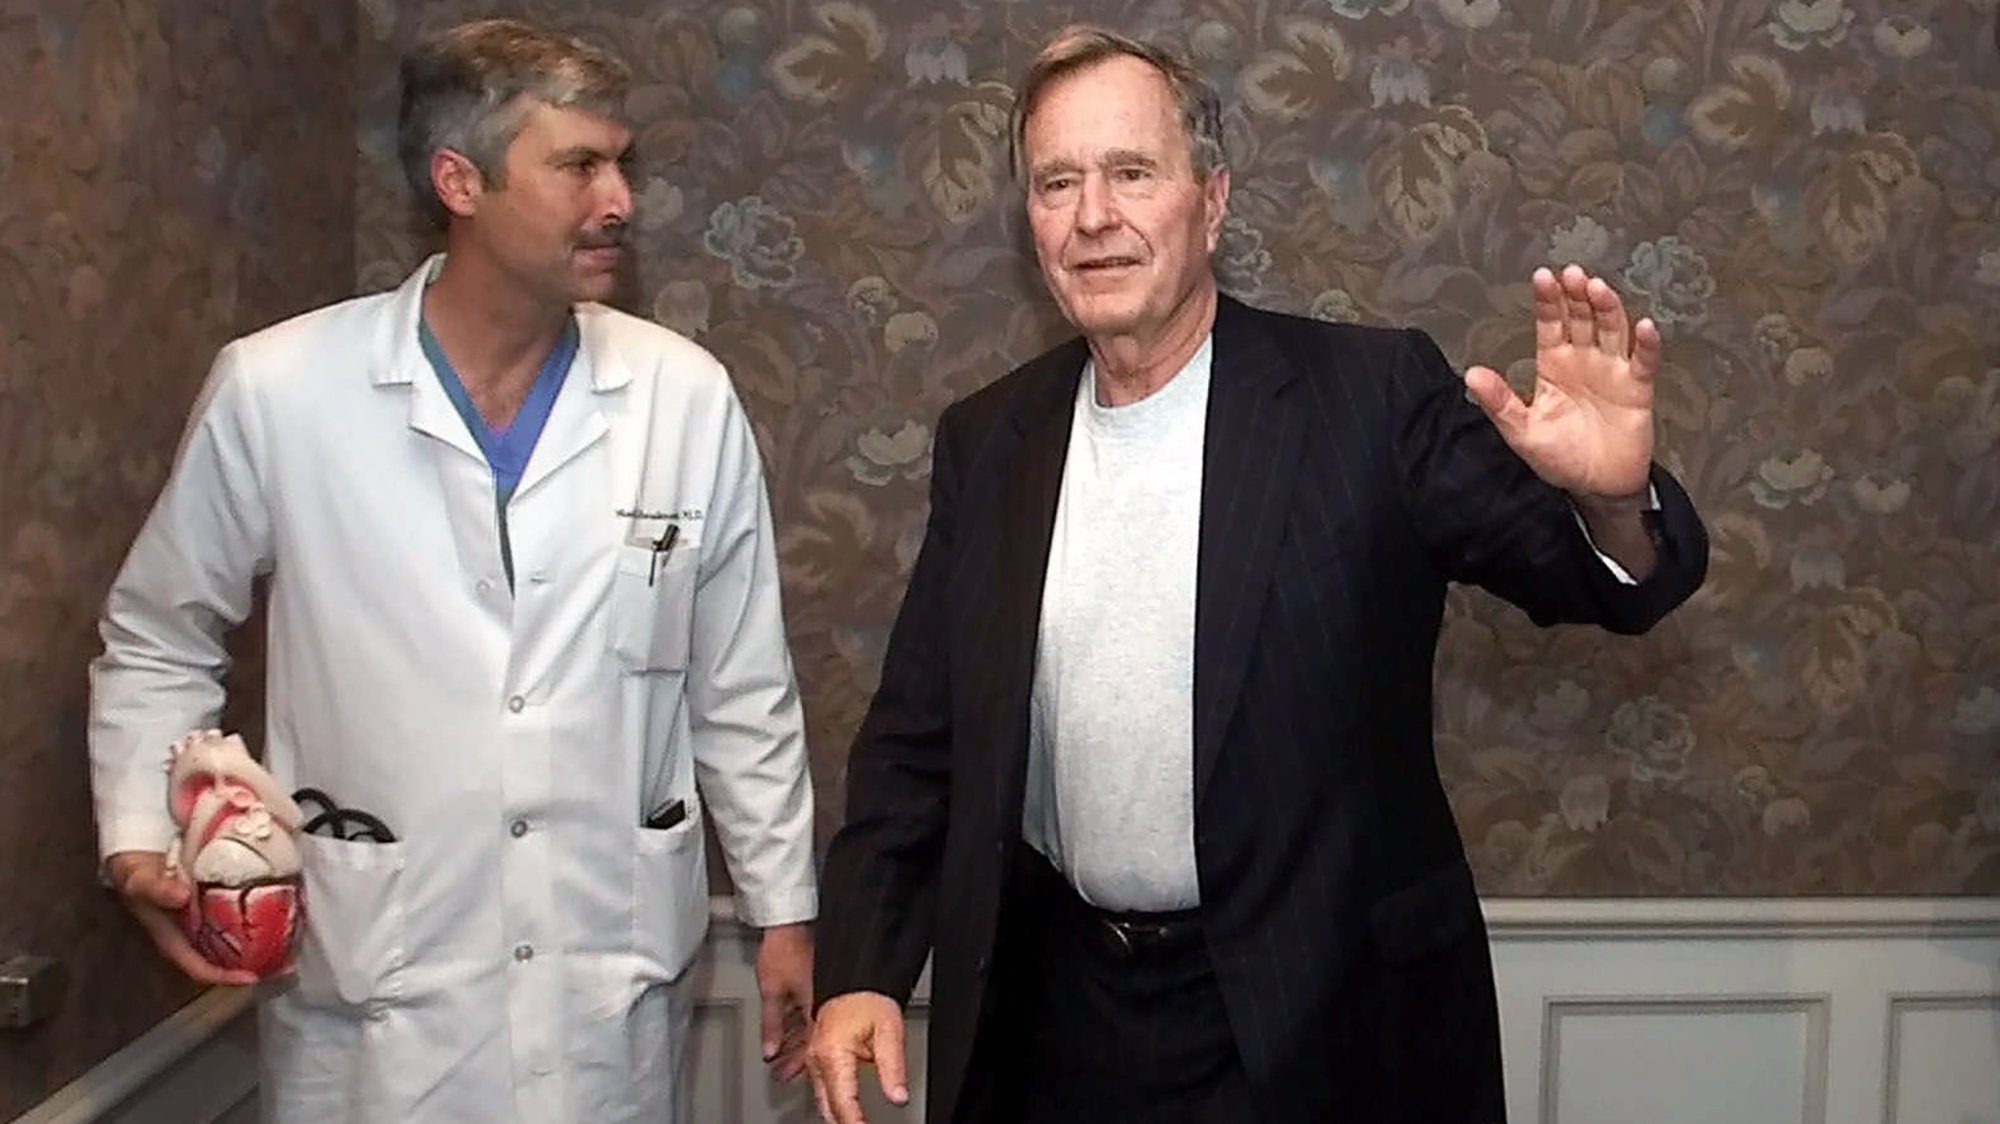 Former President George H.W. Bush, right, and Dr. Mark Hausknecht are seen after a news conference at Houston Methodist Hospital in 2000. (Credit: David J. Phillip / AP via CNN)